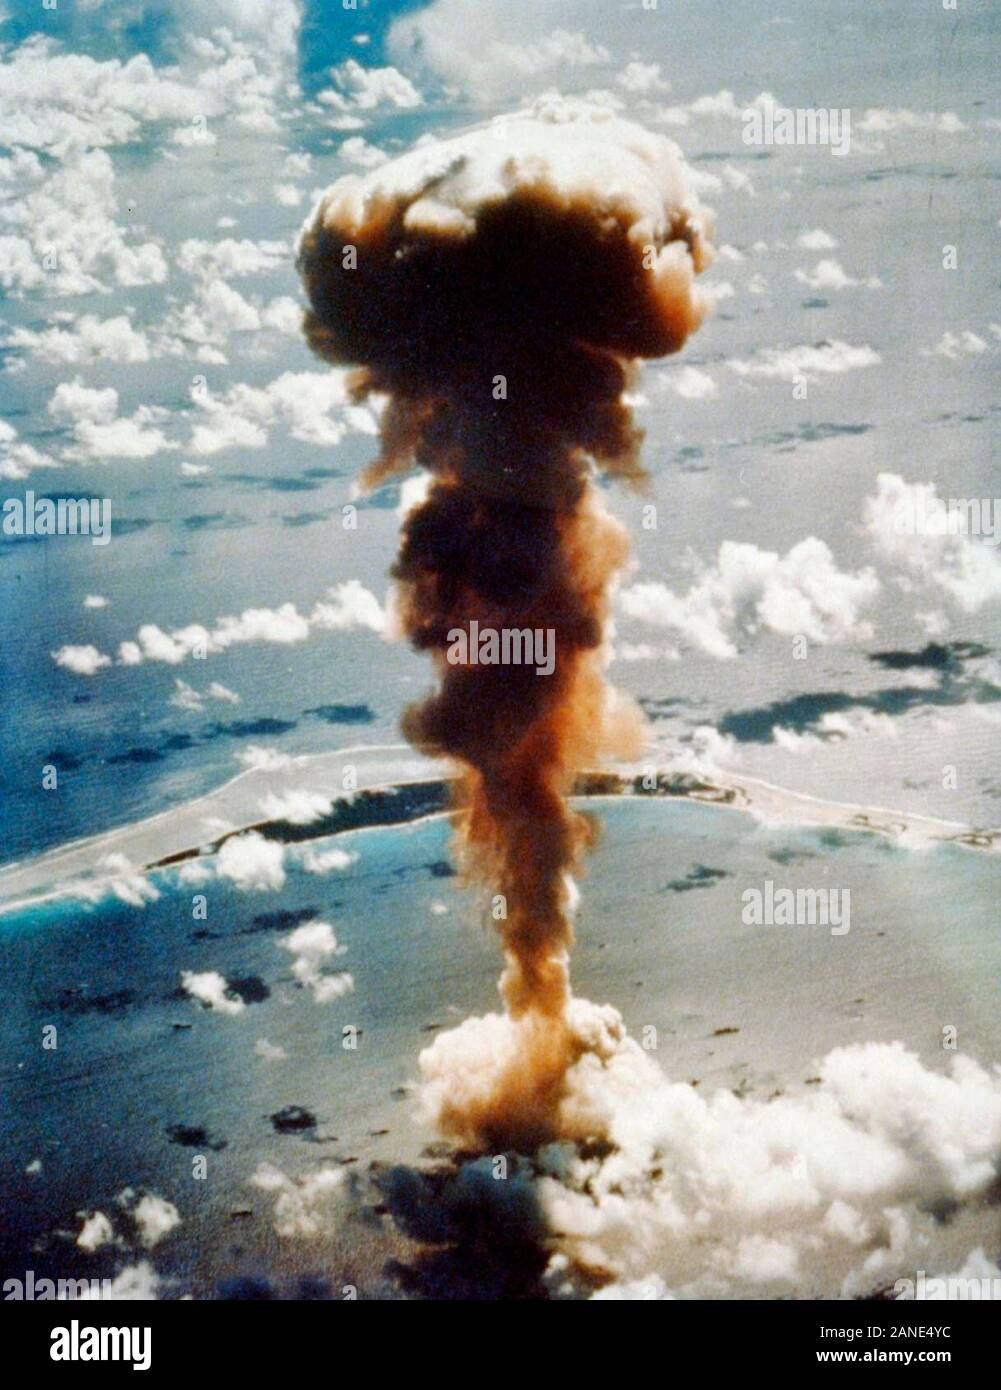 Operation Crossroads explosion. Aerial view of mushroom cloud from atomic bomb Able, Bikini Atoll in the Pacific. July 1, 1946 Stock Photo